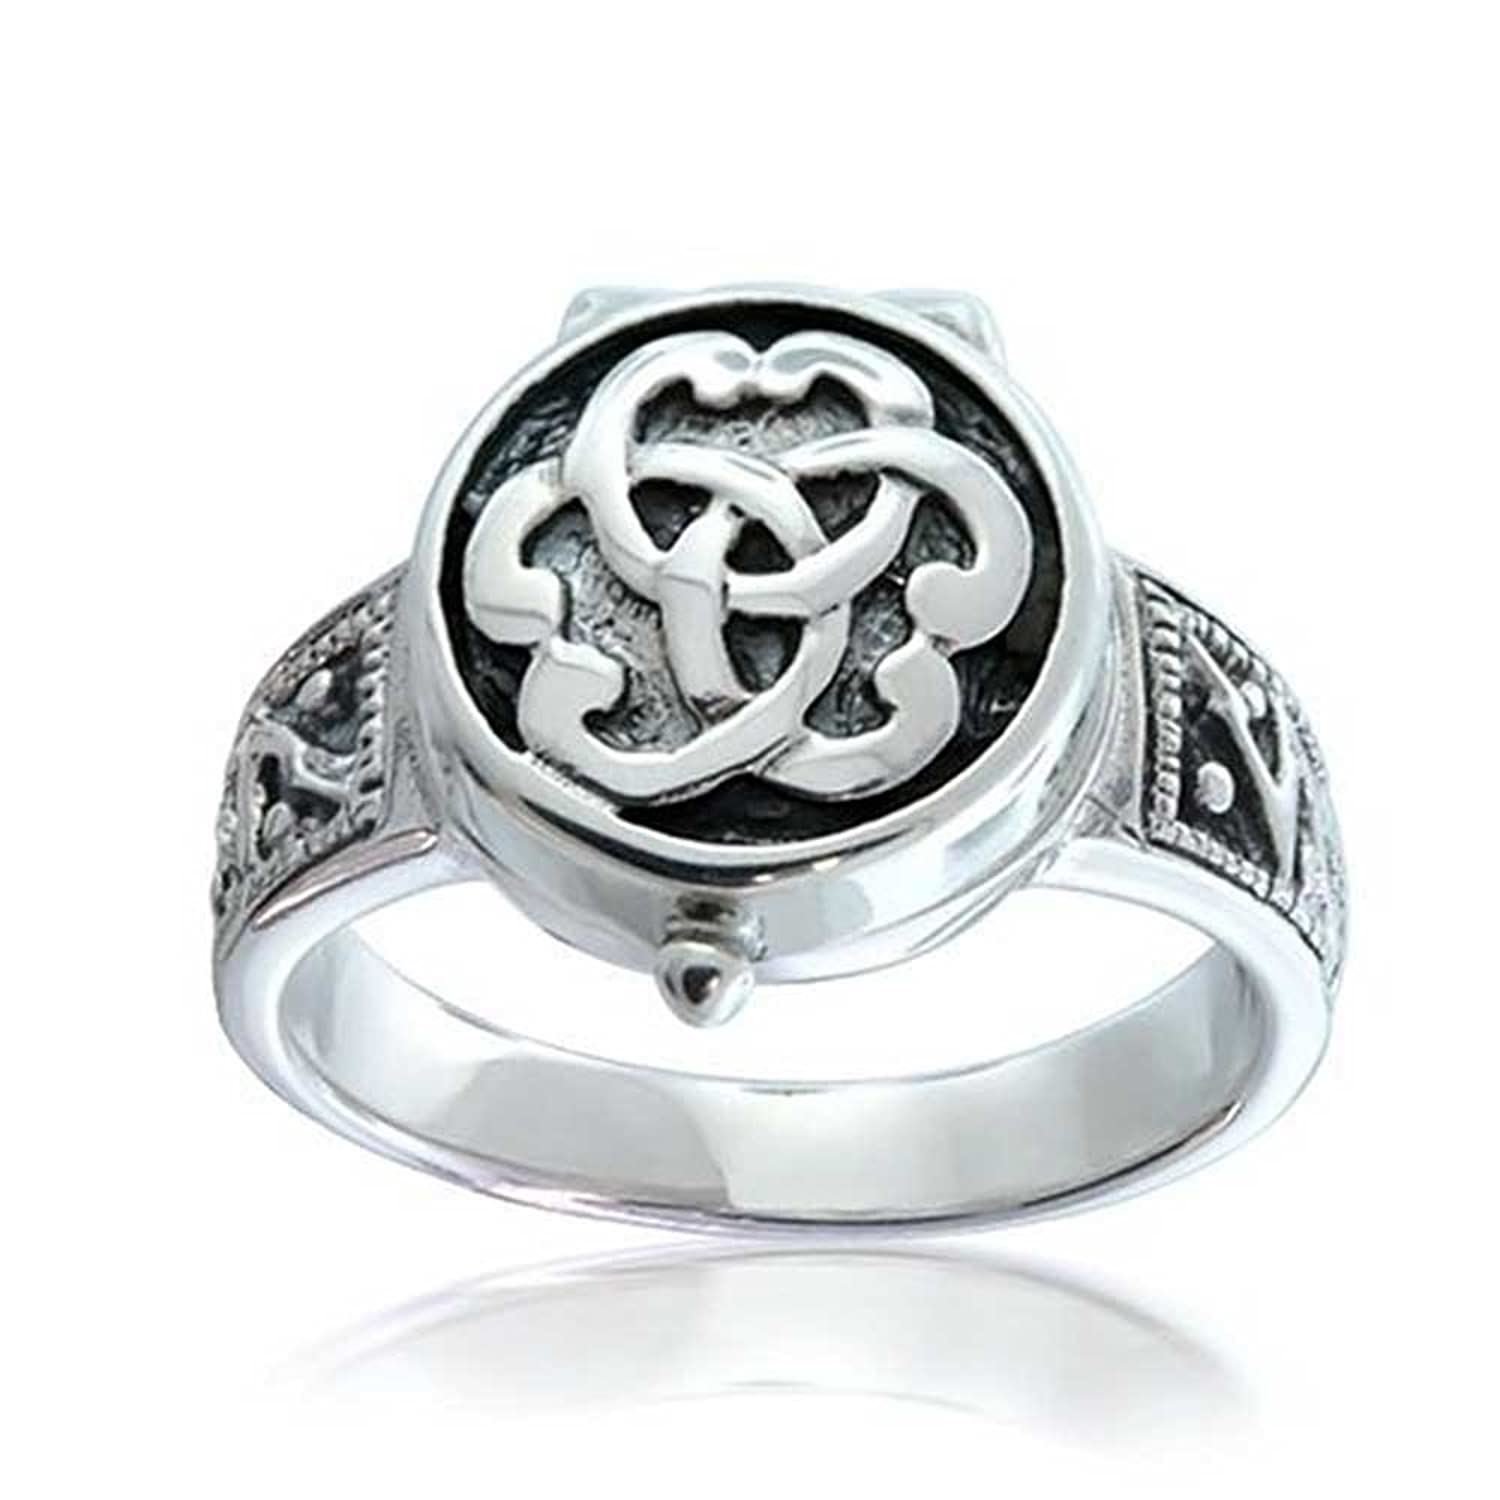 ring triquetra lockets poison sterling sstr sterlingsilver locket knot celticknot bling locketring jewelry silver celtic